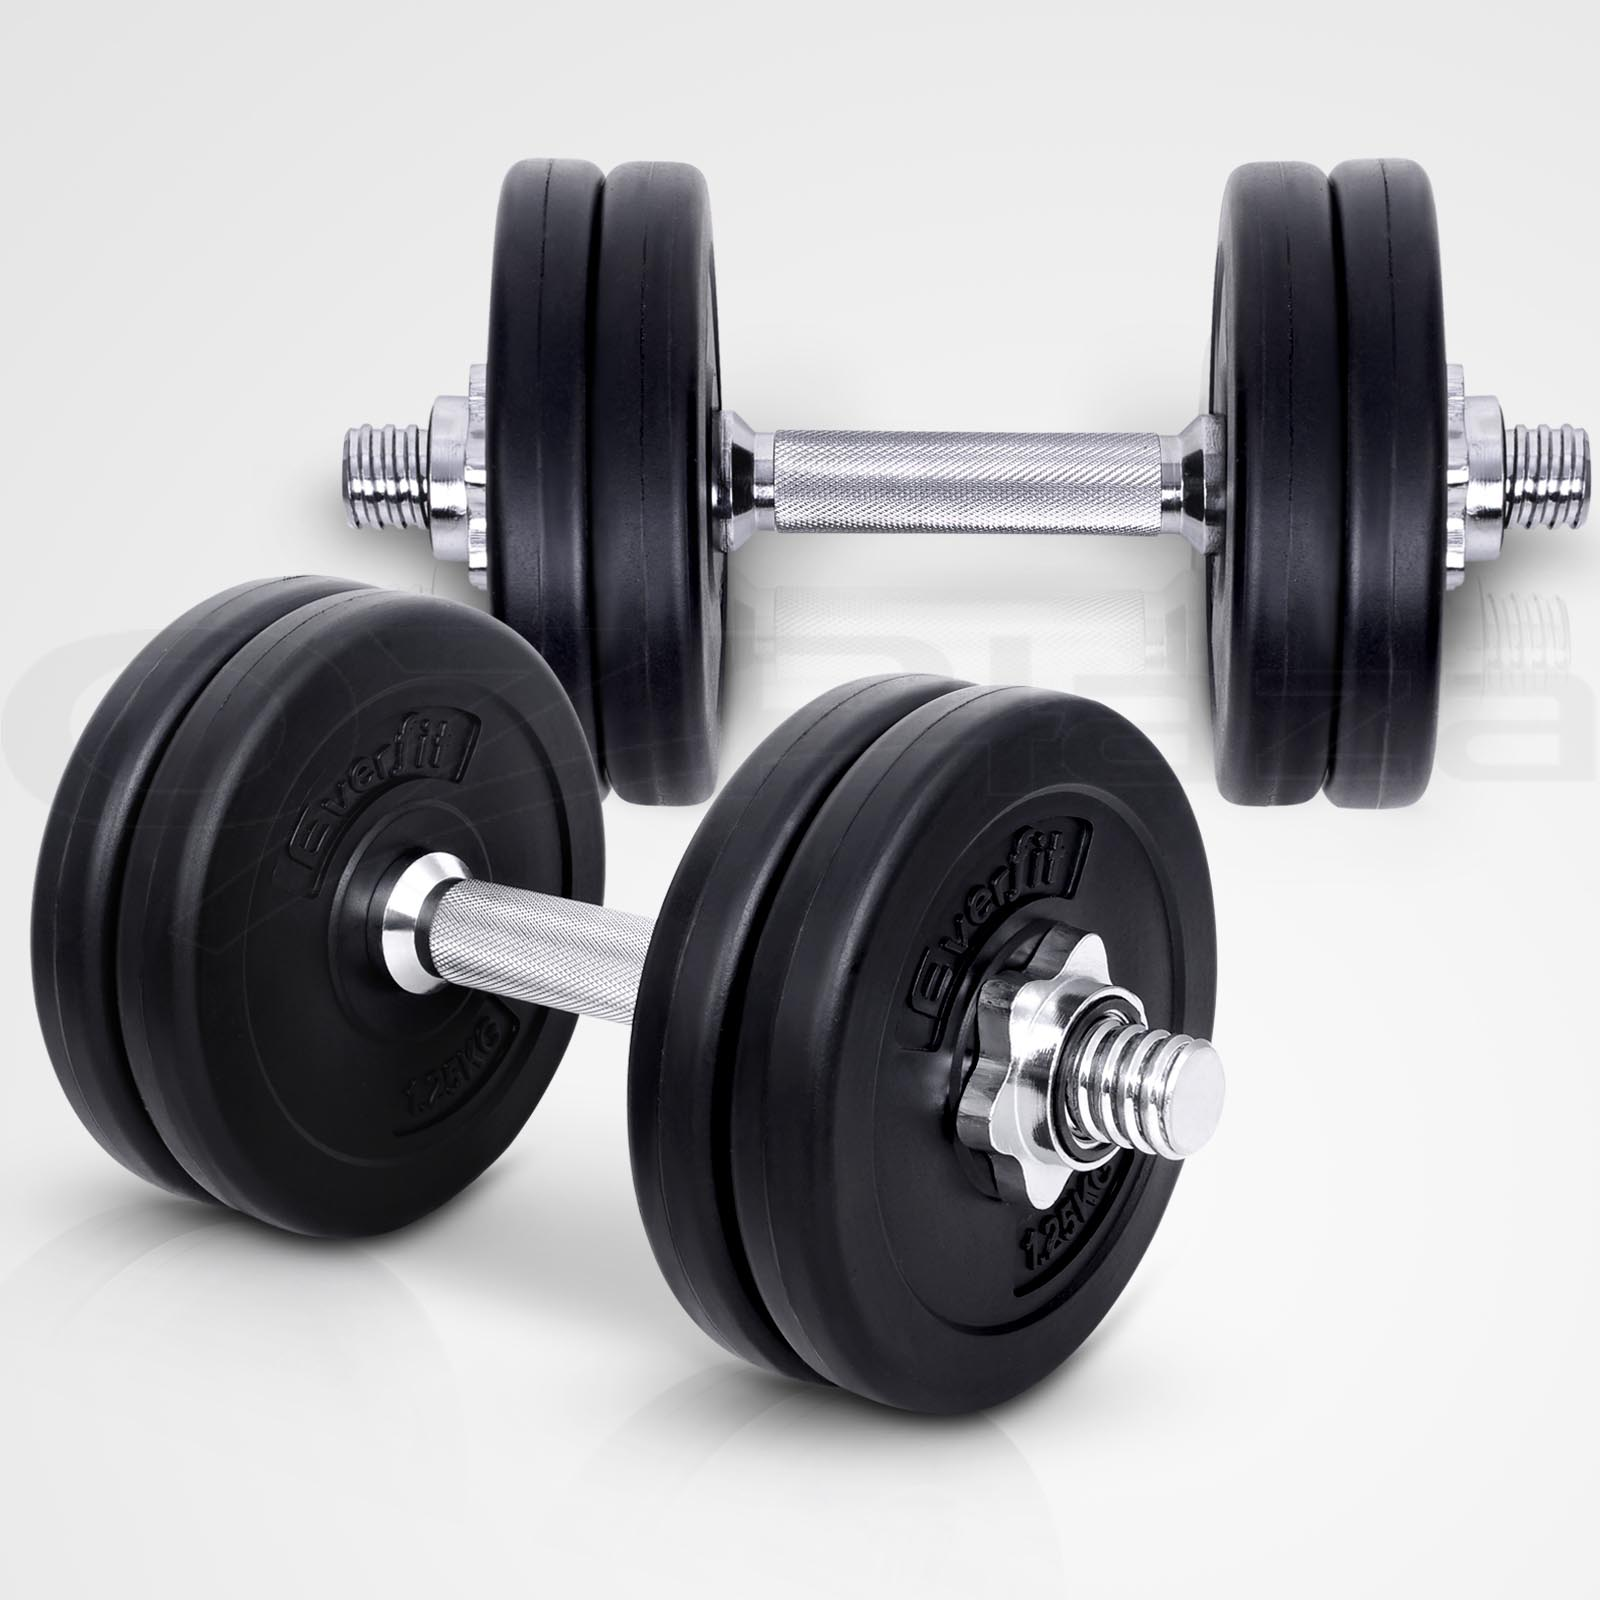 Exercise Barbell Dumbbell: Everfit Dumbbell Set Weight Dumbbells Plates Home Gym